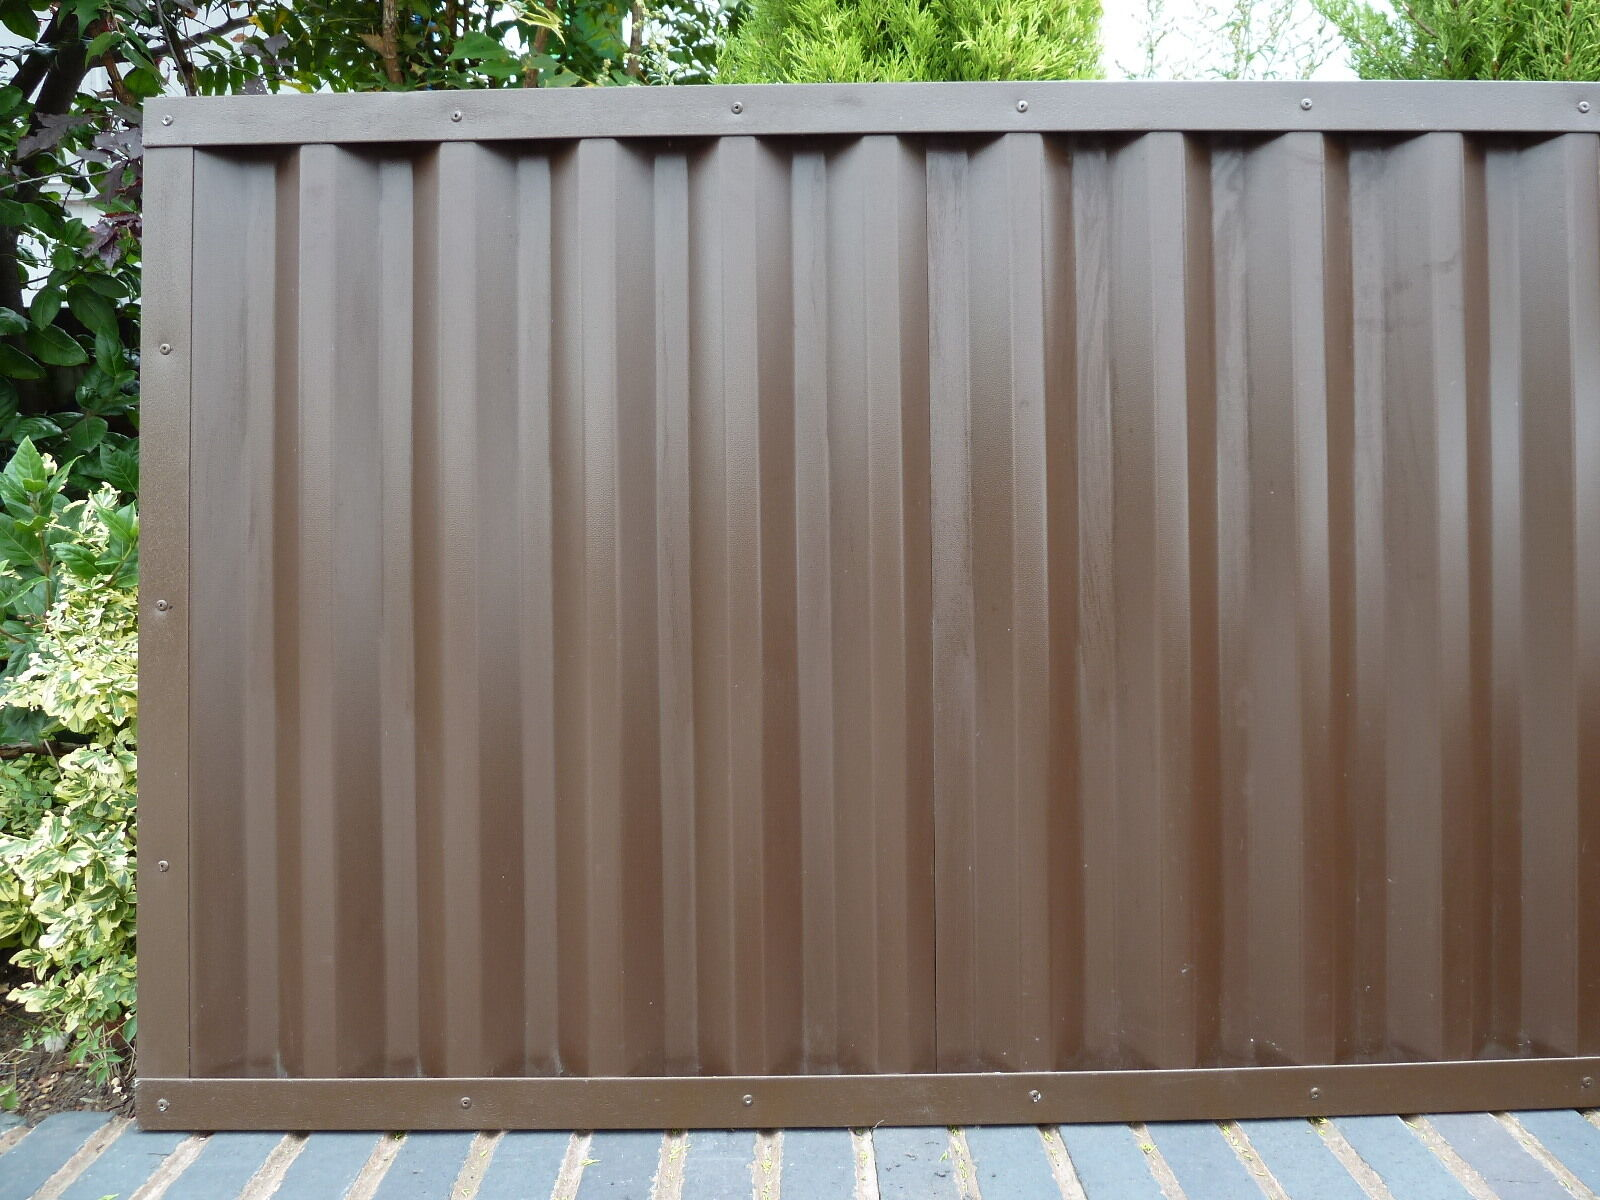 Details about Metal Fencing Panels Plastisol Coated Steel Fence Panels *  Maintenance Free *